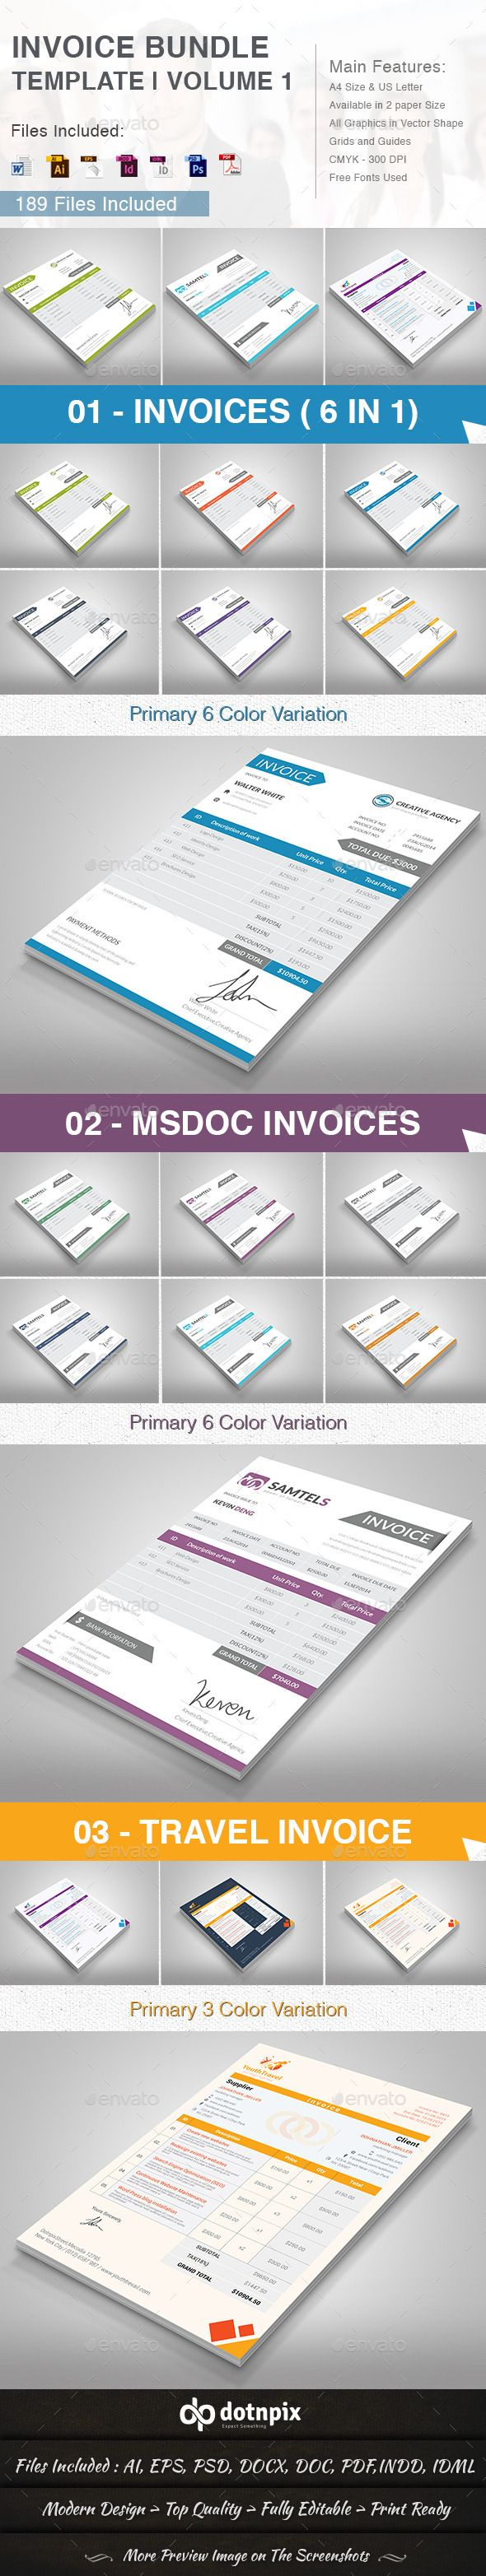 Best Invoice Images On   Invoice Template Invoice